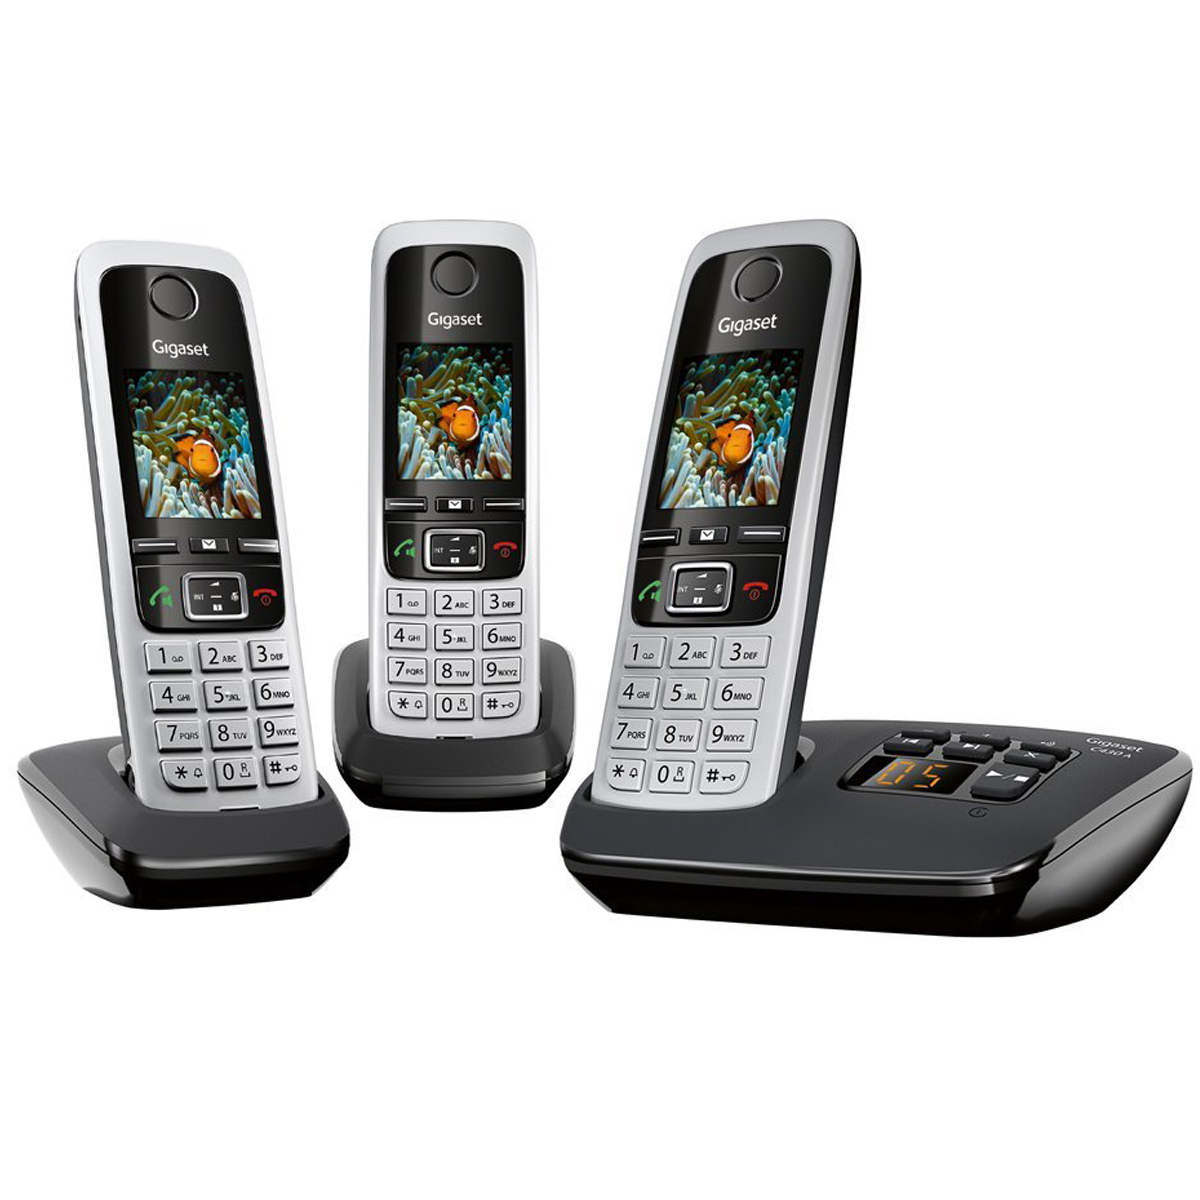 siemens gigaset c430a trio dect cordless phone with answering machine grade c ebay. Black Bedroom Furniture Sets. Home Design Ideas